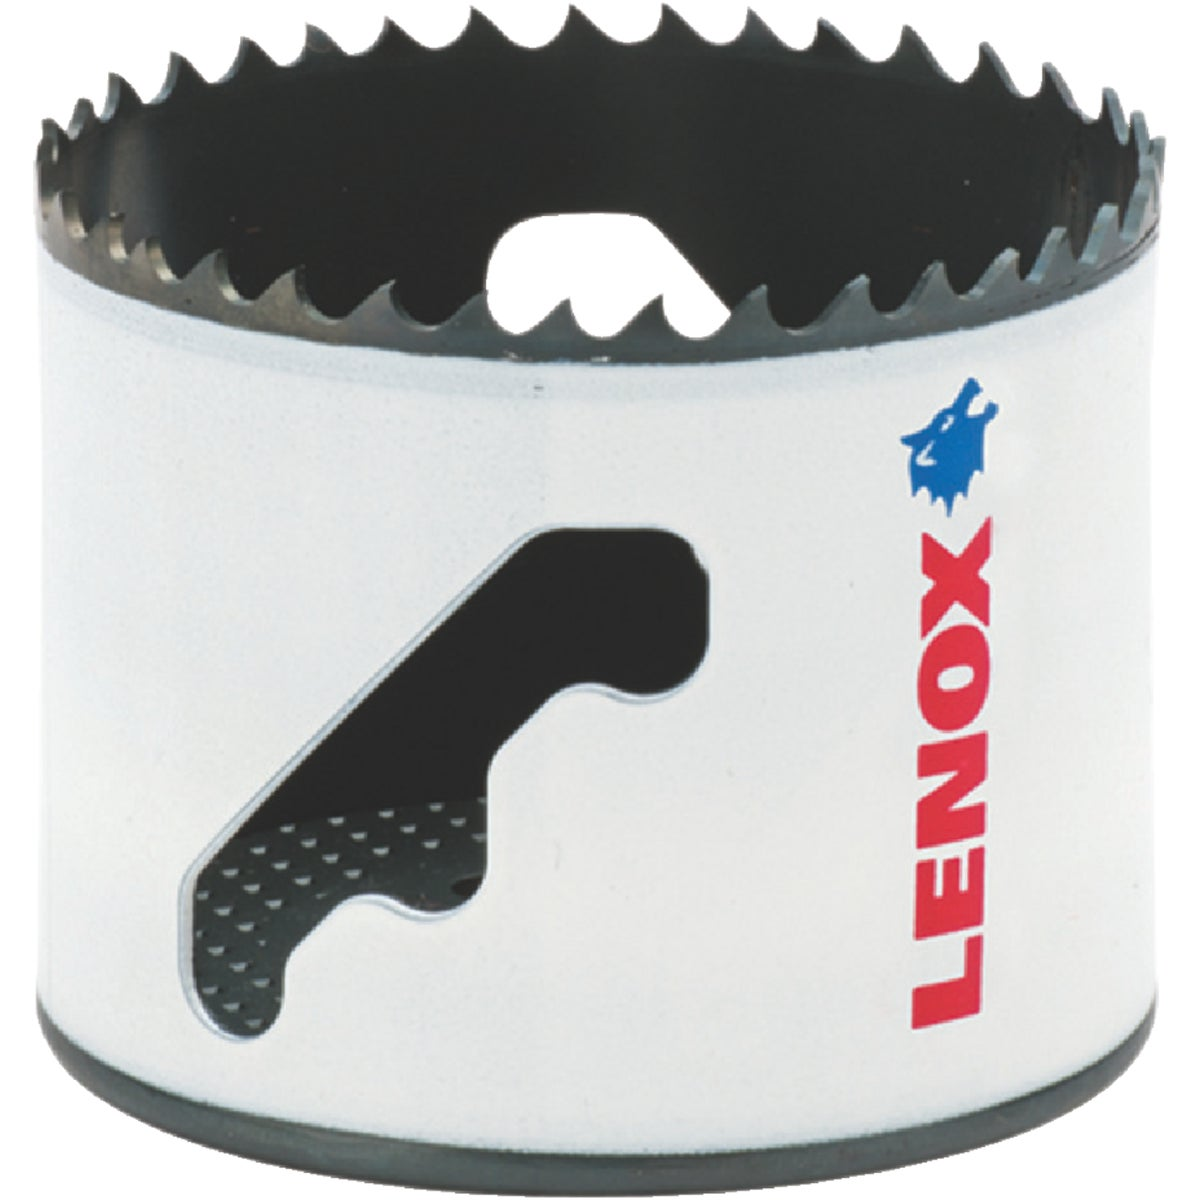 "2-1/2"" HOLE SAW - 1771987 by Lenox"